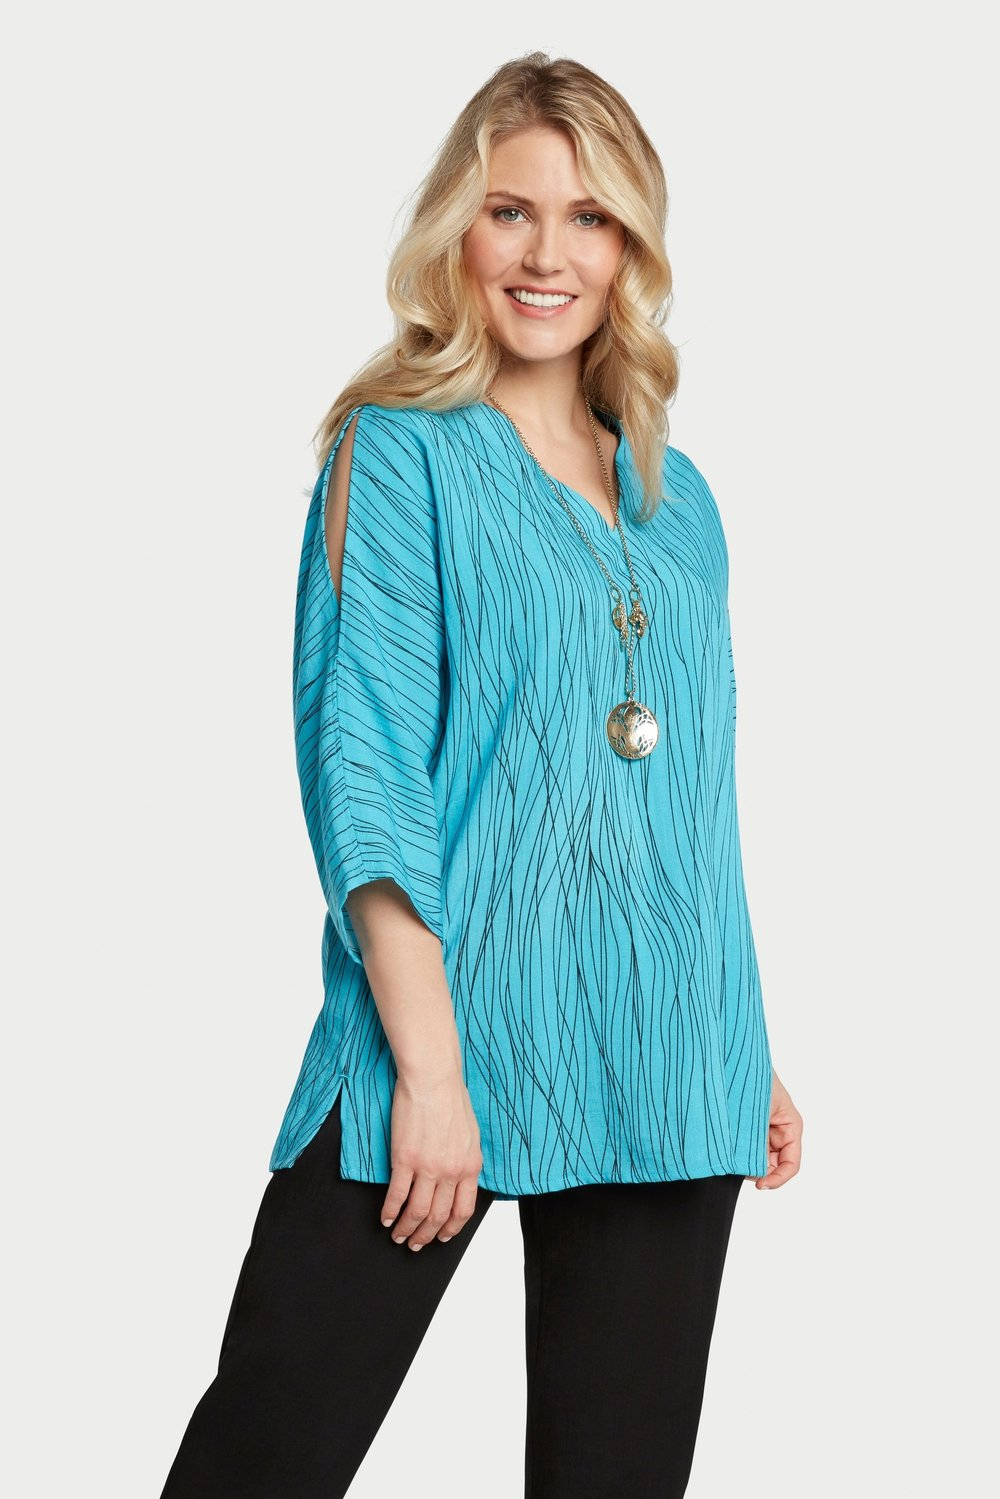 AA254 - Peek-a-boo Sleeves Pullover    CL2567W - Caribbean Waves